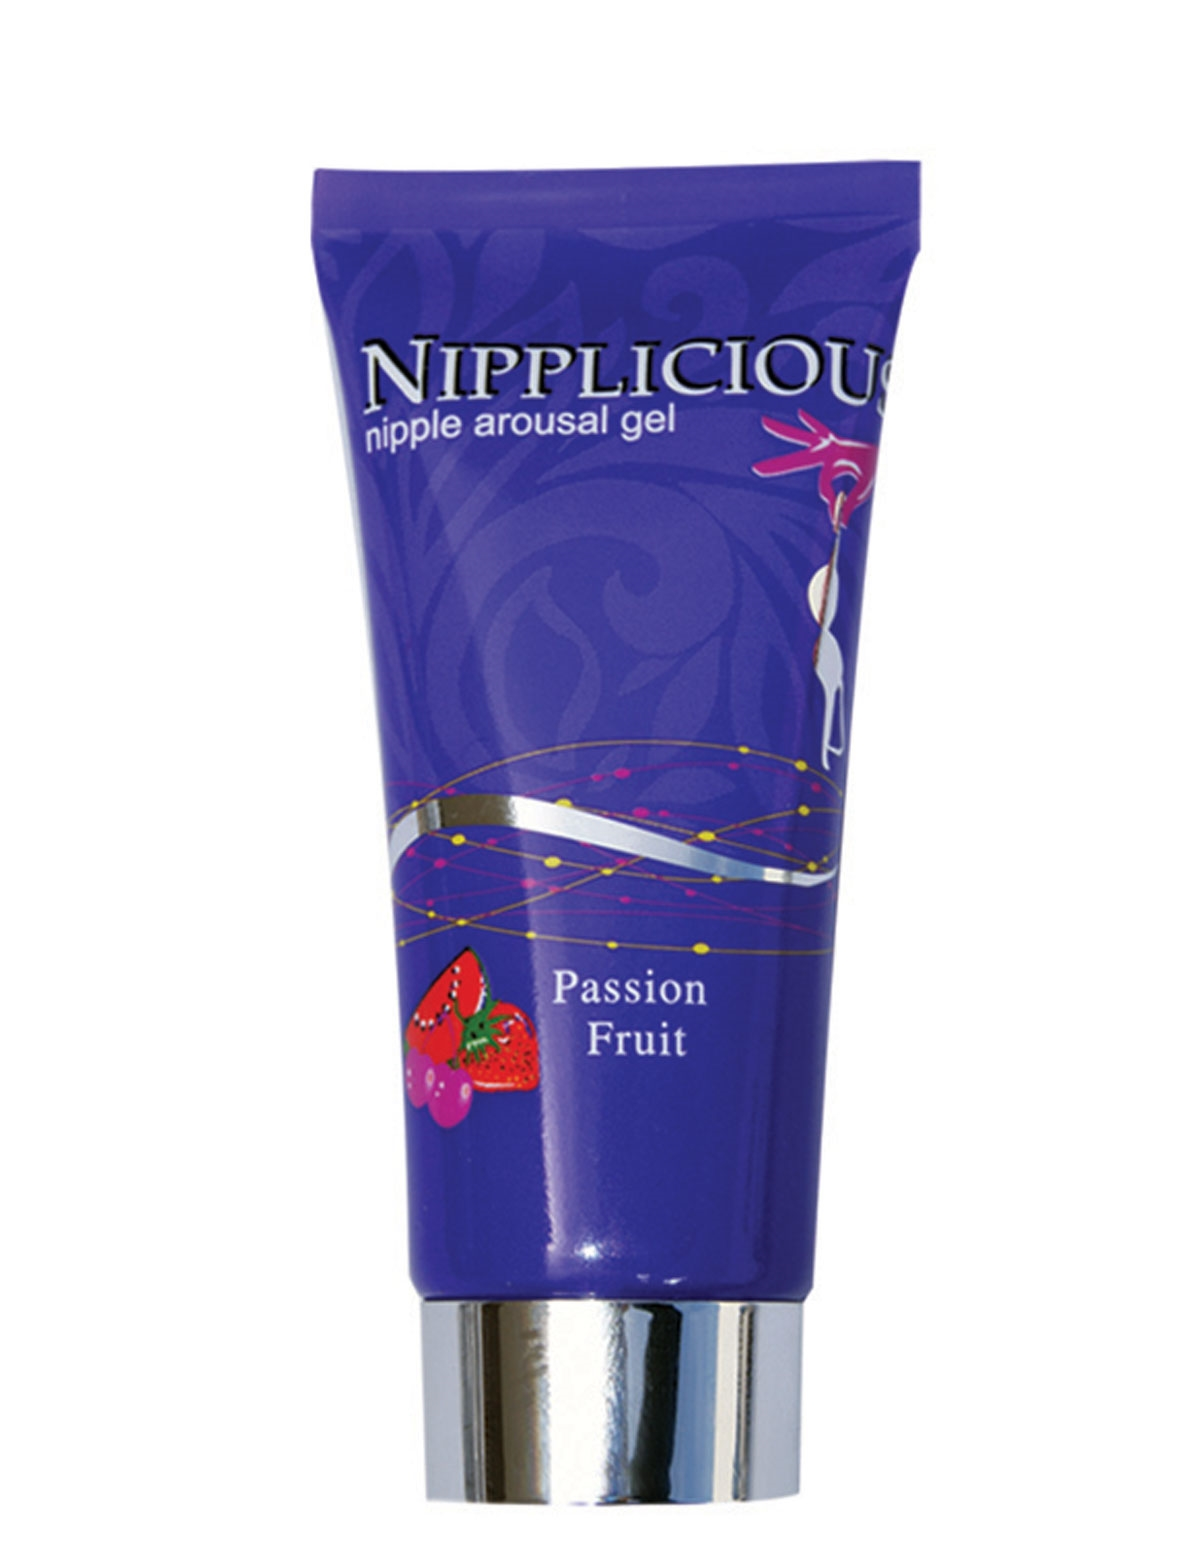 Nipplicious Passion Fruit